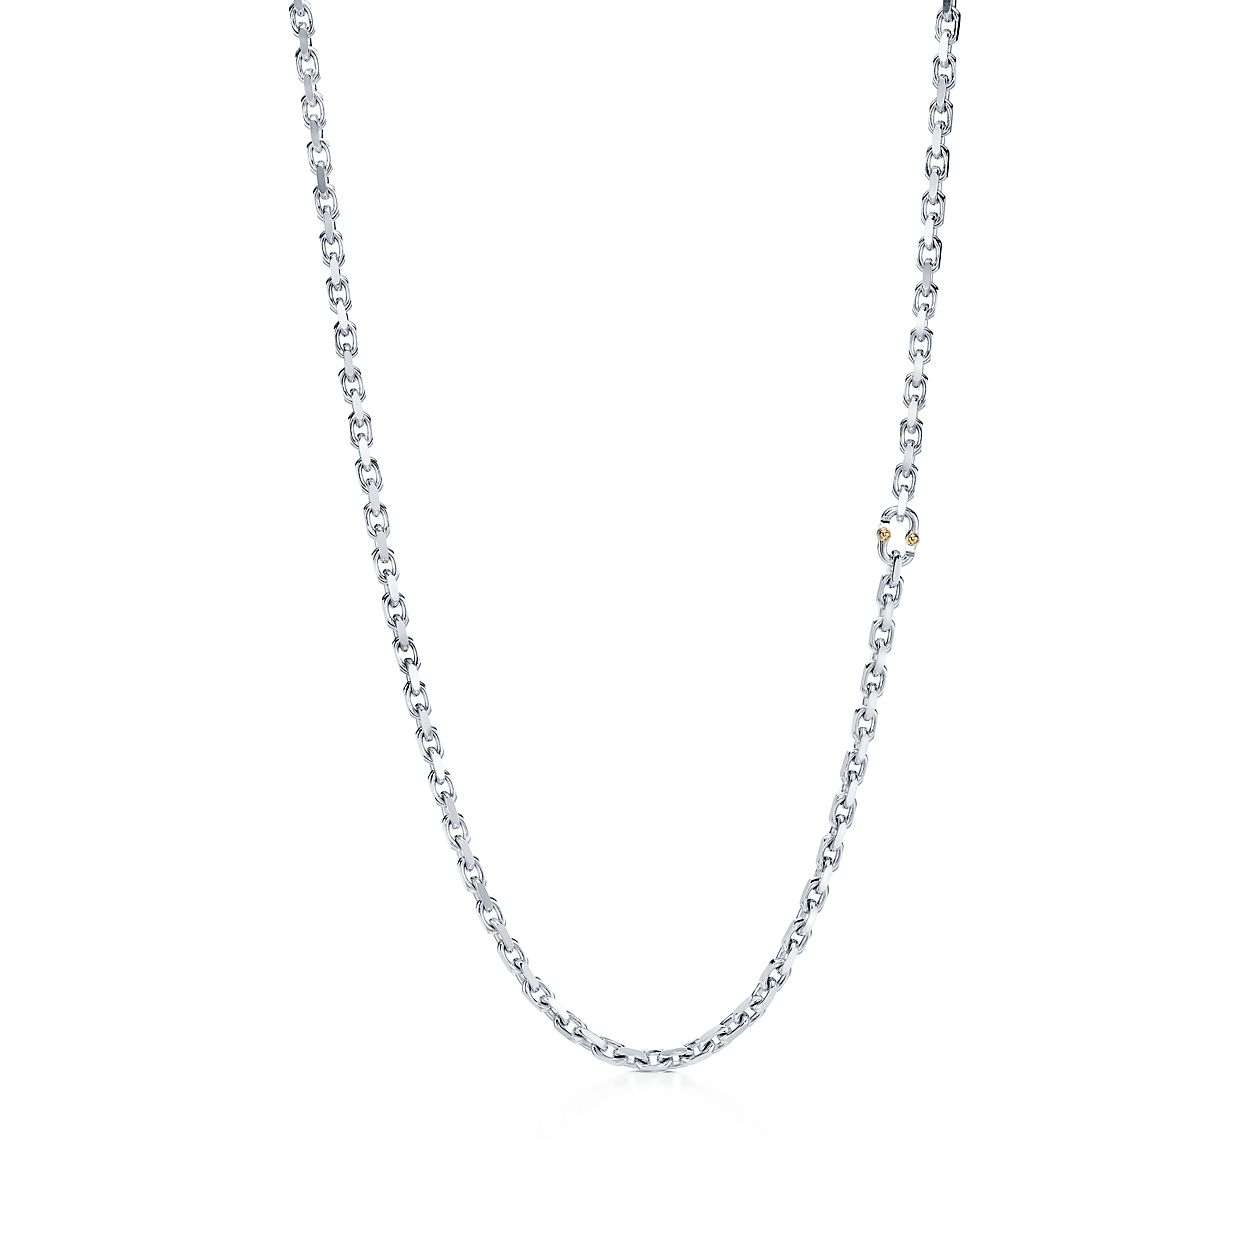 Tiffany 1837 Makers Chain Necklace In Sterling Silver And 18k Gold 24 Tiffany Co